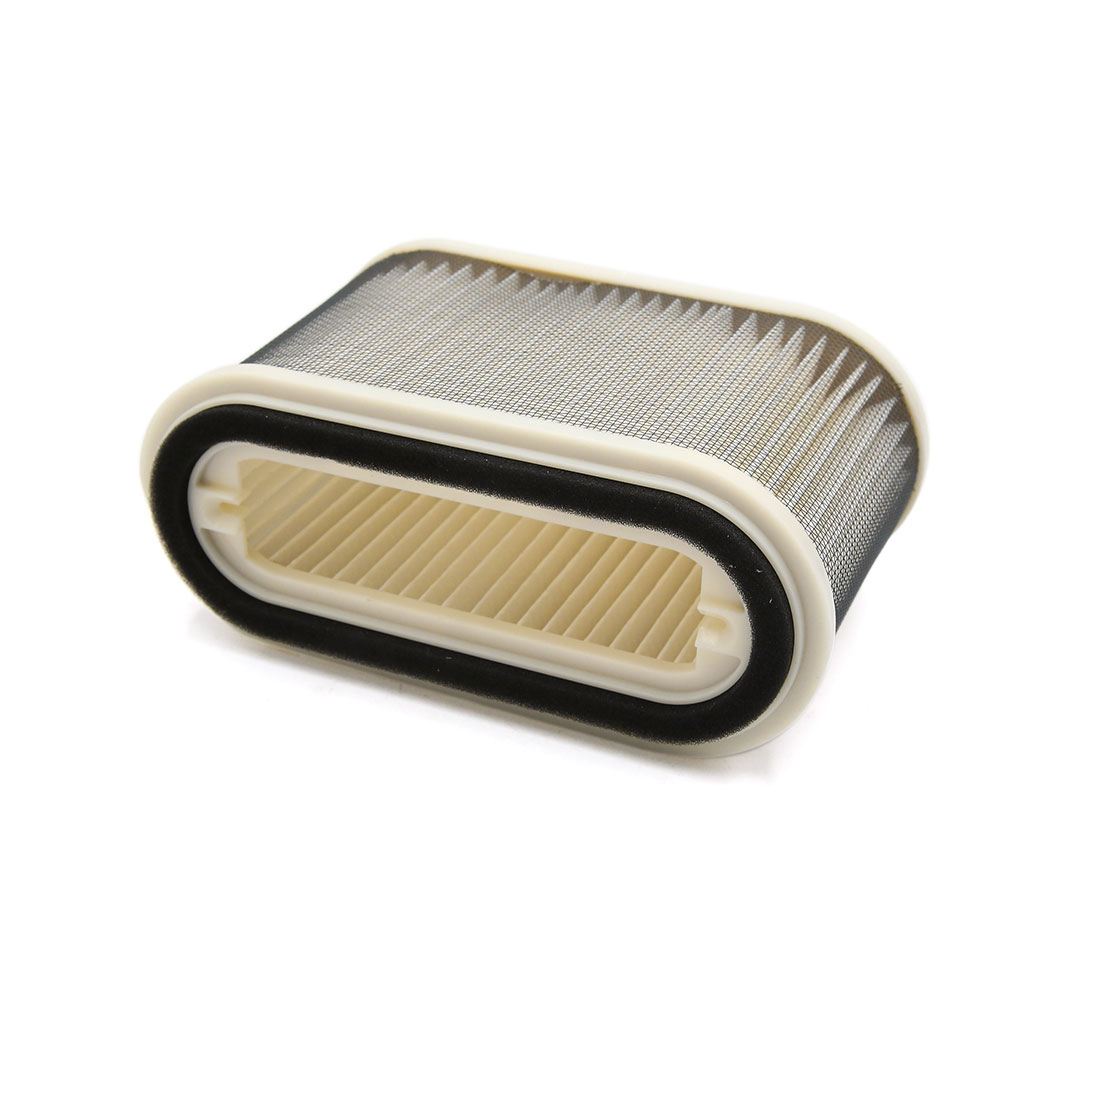 White Scooter Motorcycle Engine Air Intake Filter Replacement for Yamaha - image 3 de 3